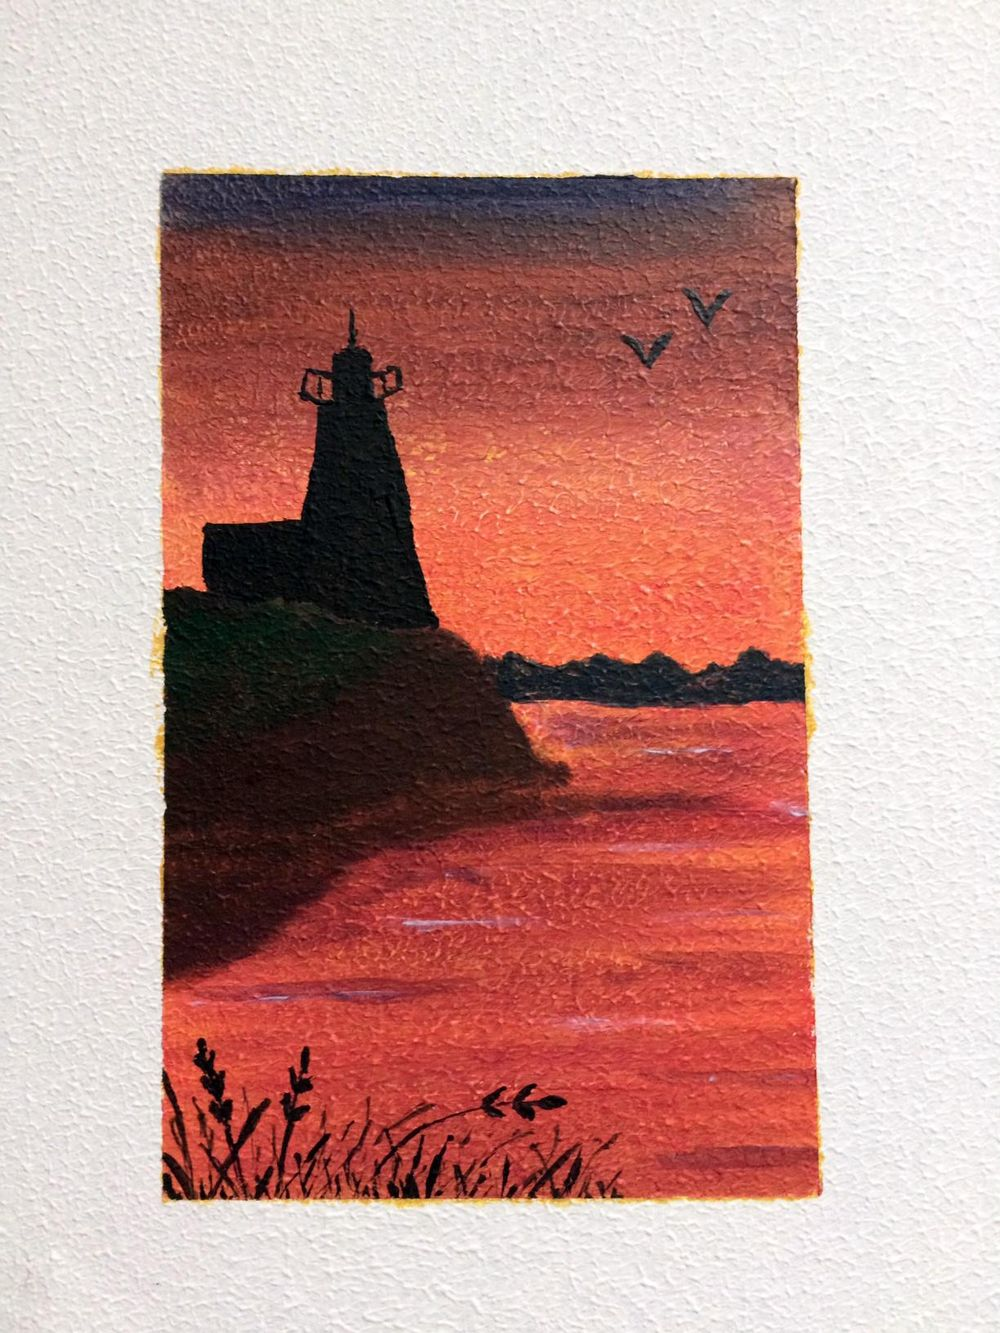 Lighthouse - image 2 - student project